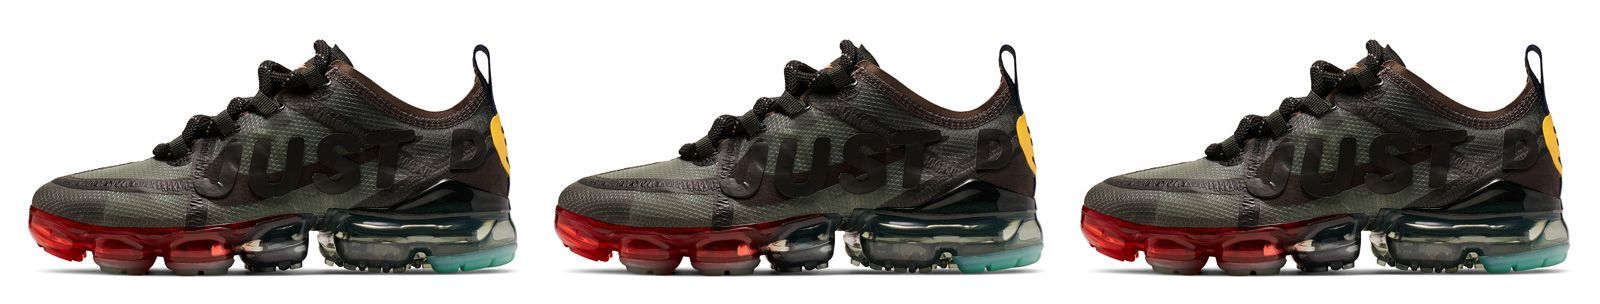 online retailer 4c052 12e67 CPFM x Nike Air VaporMax 2019 launches Tuesday May 14th at in-store Dover  Street Market New York via online raffle. The raffle for the opportunity to  ...